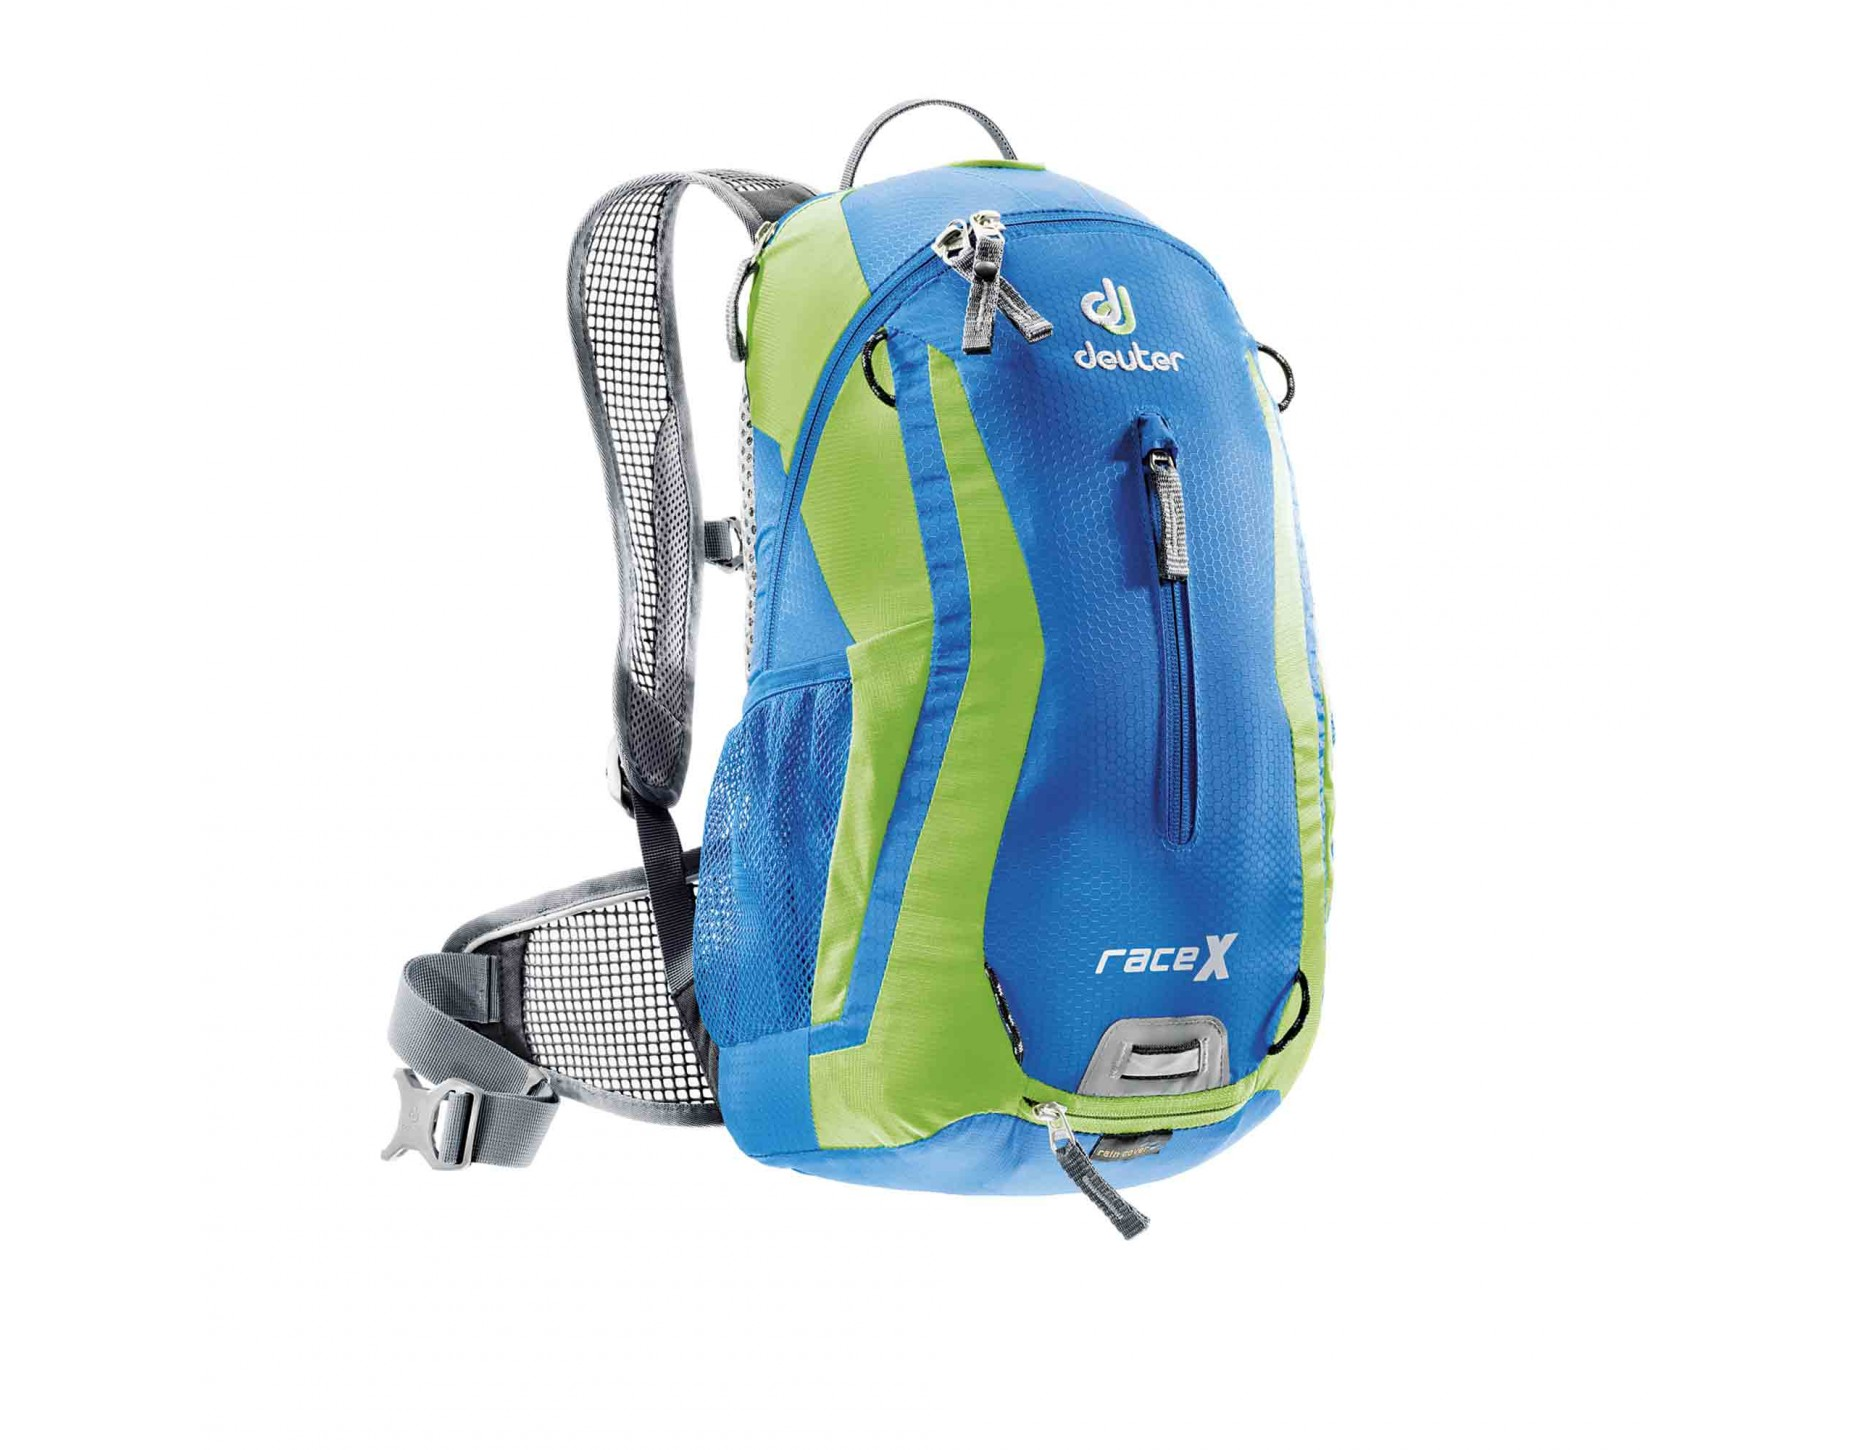 deuter RACE X backpack – everything you need!